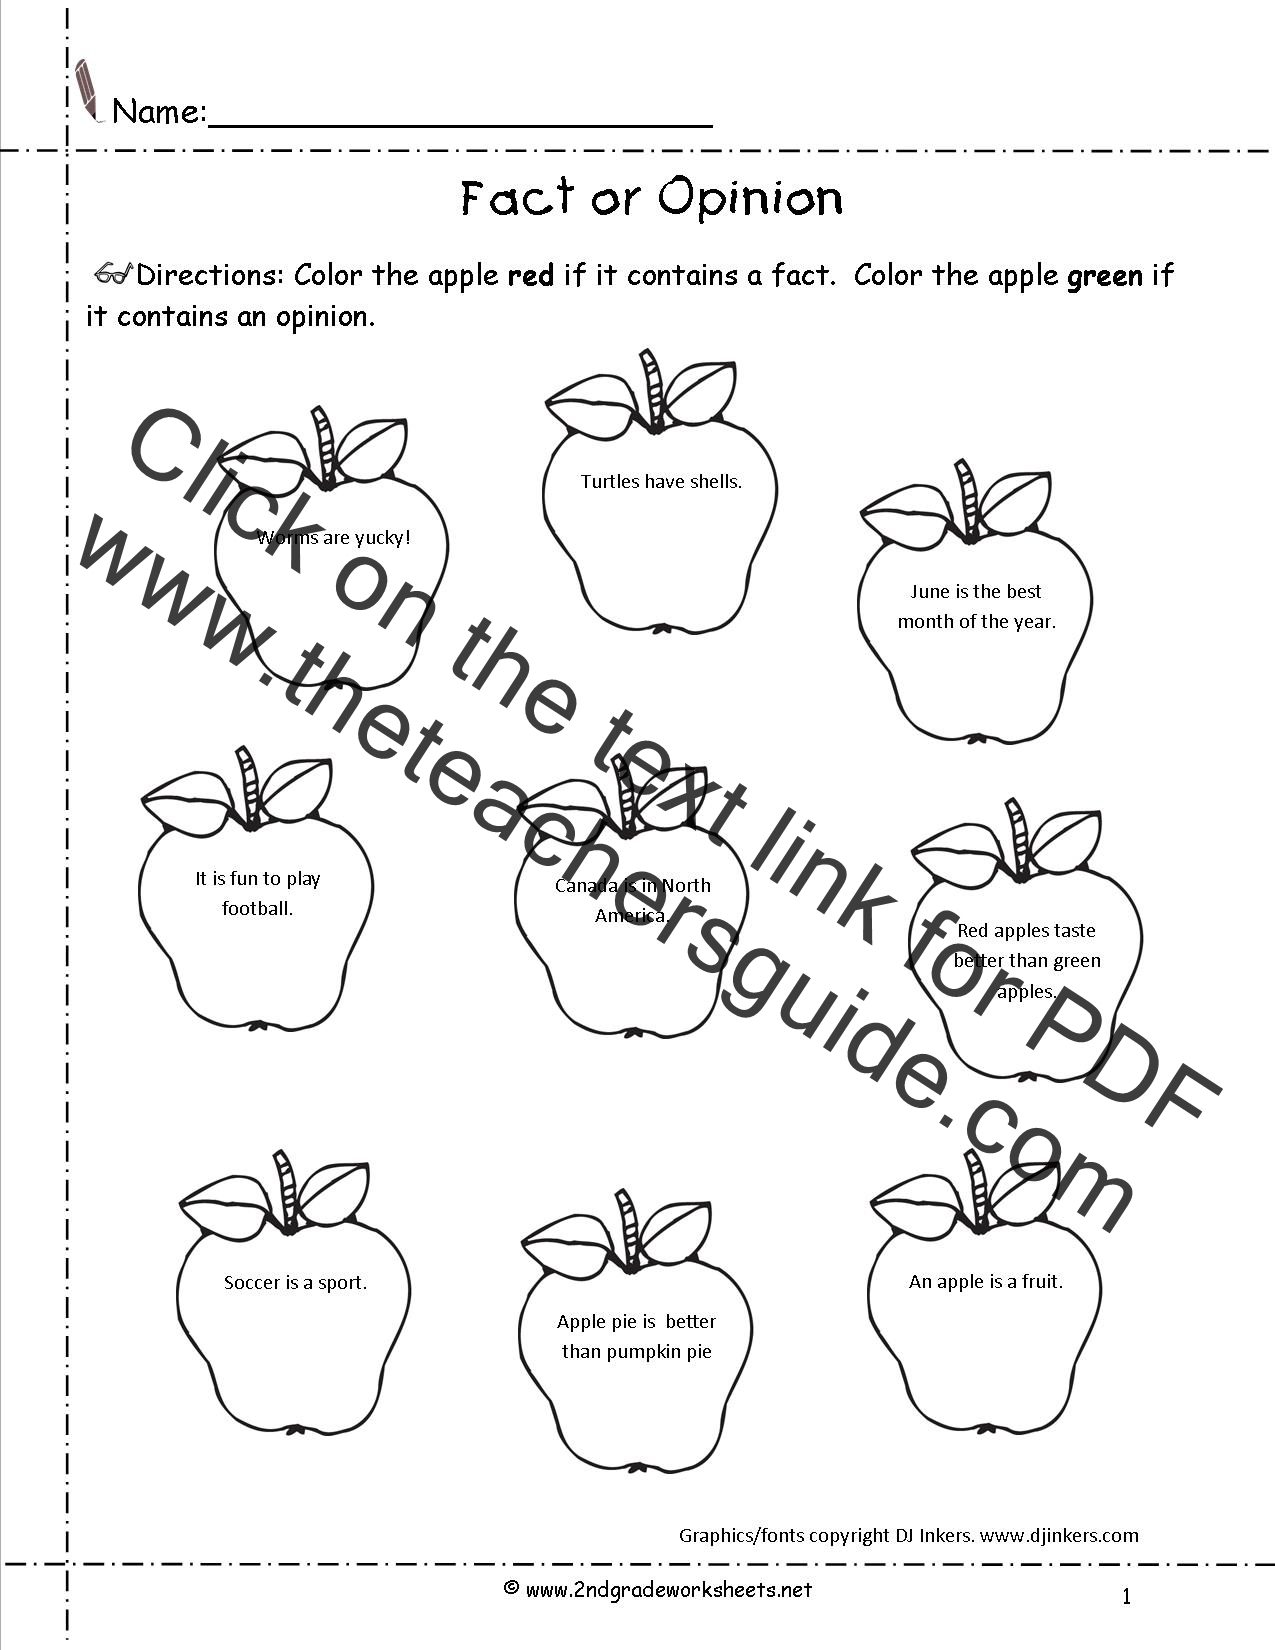 Worksheets Fact Vs Opinion Worksheets ccss ela literacy w 2 1 worksheets fact or opinion worksheet